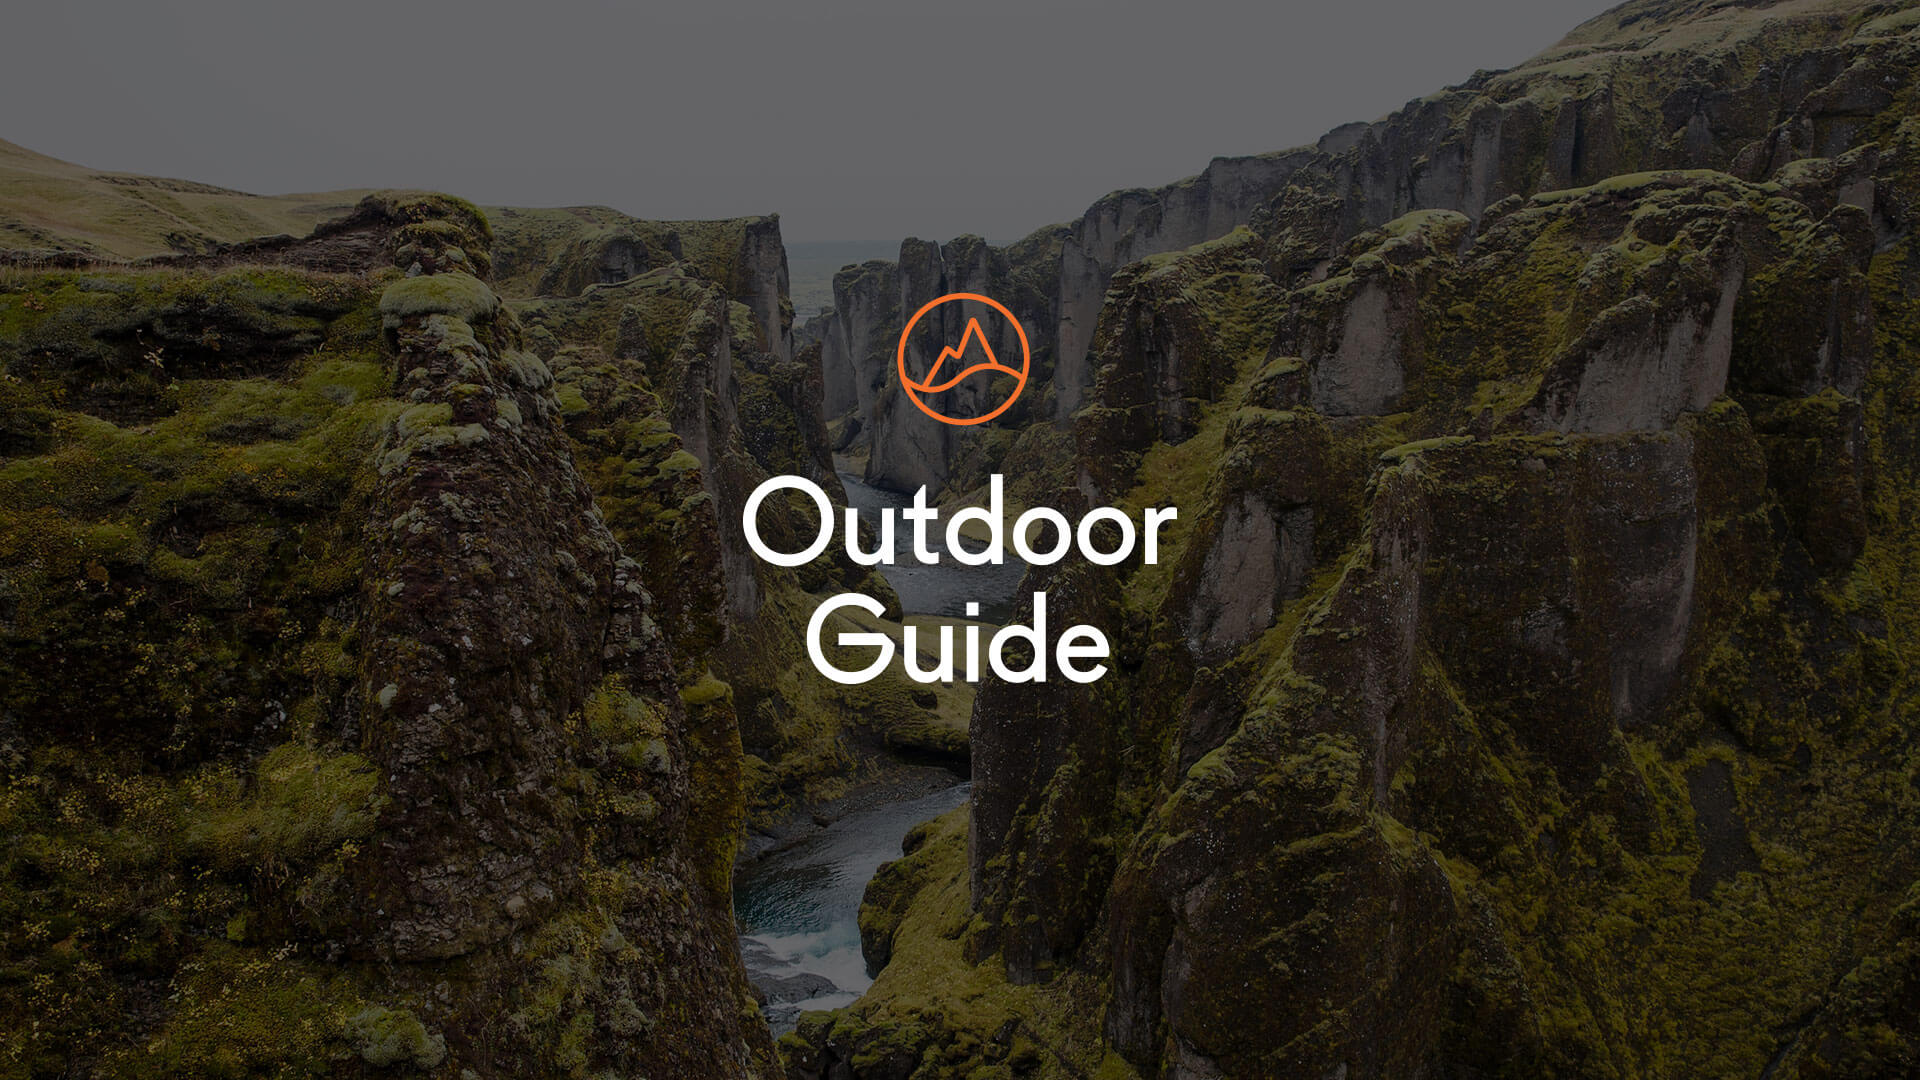 Outdoor Guide Logo on an Image of a Canyon